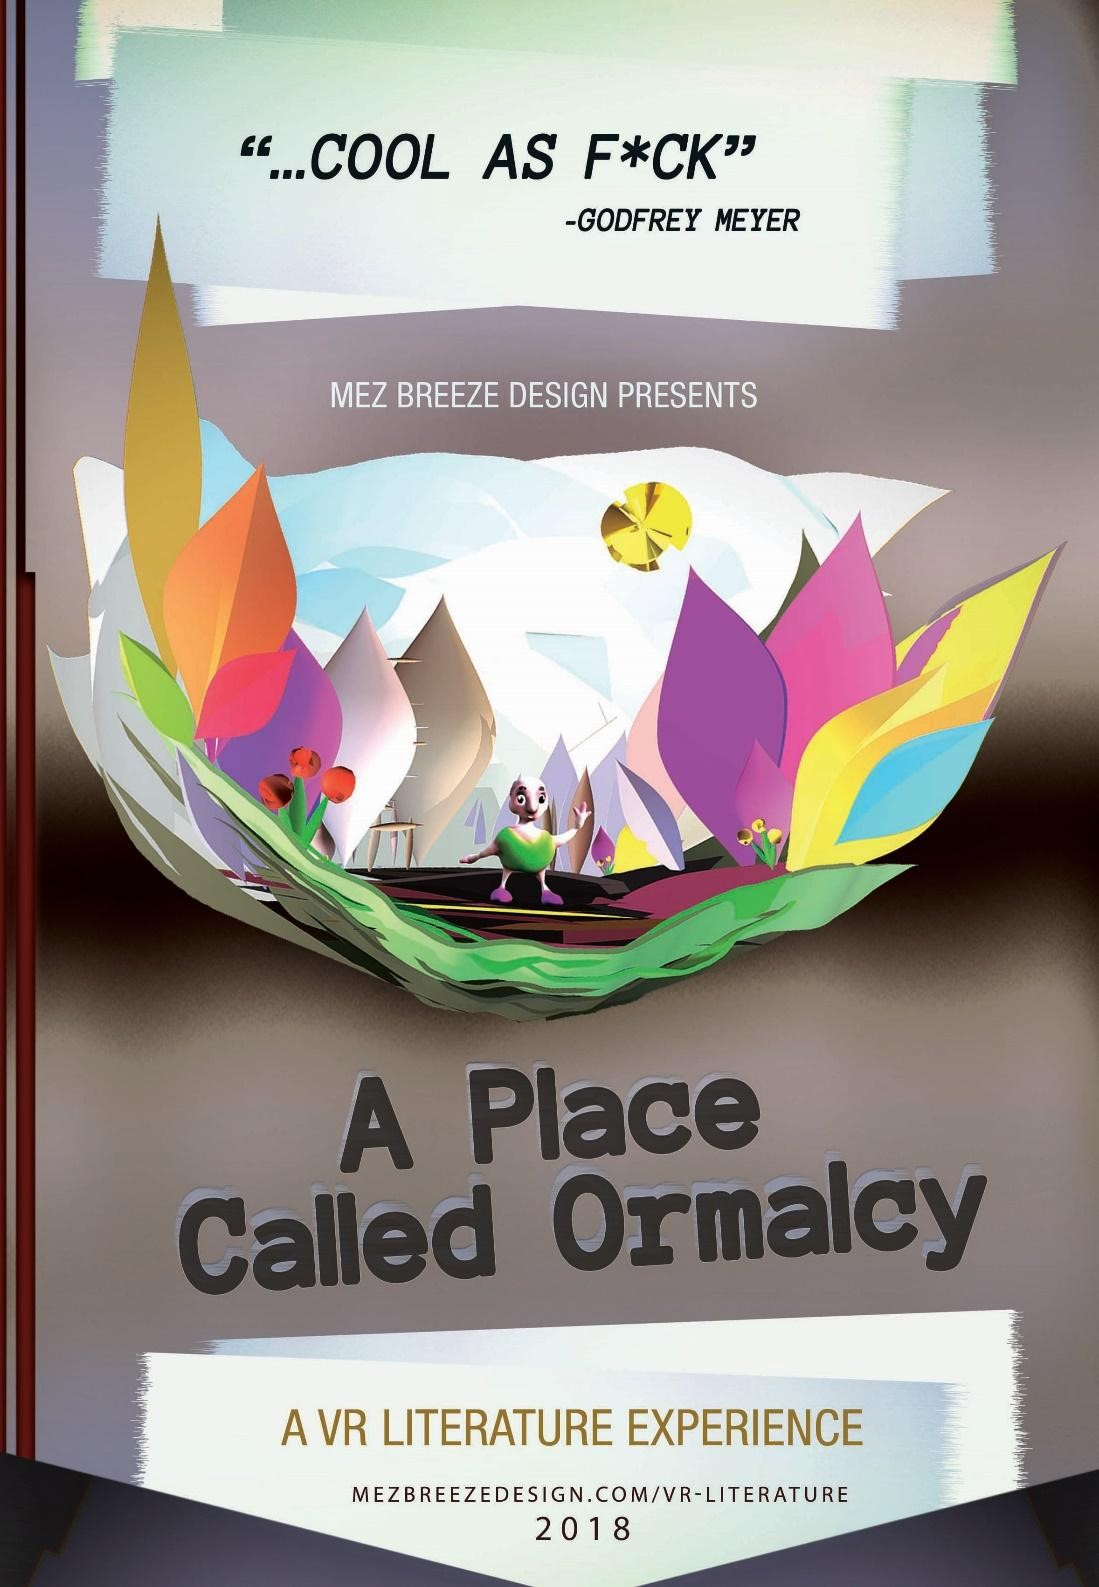 a place to call home by deborah smith reviews a place called home book A Place Called Ormalcy front cover